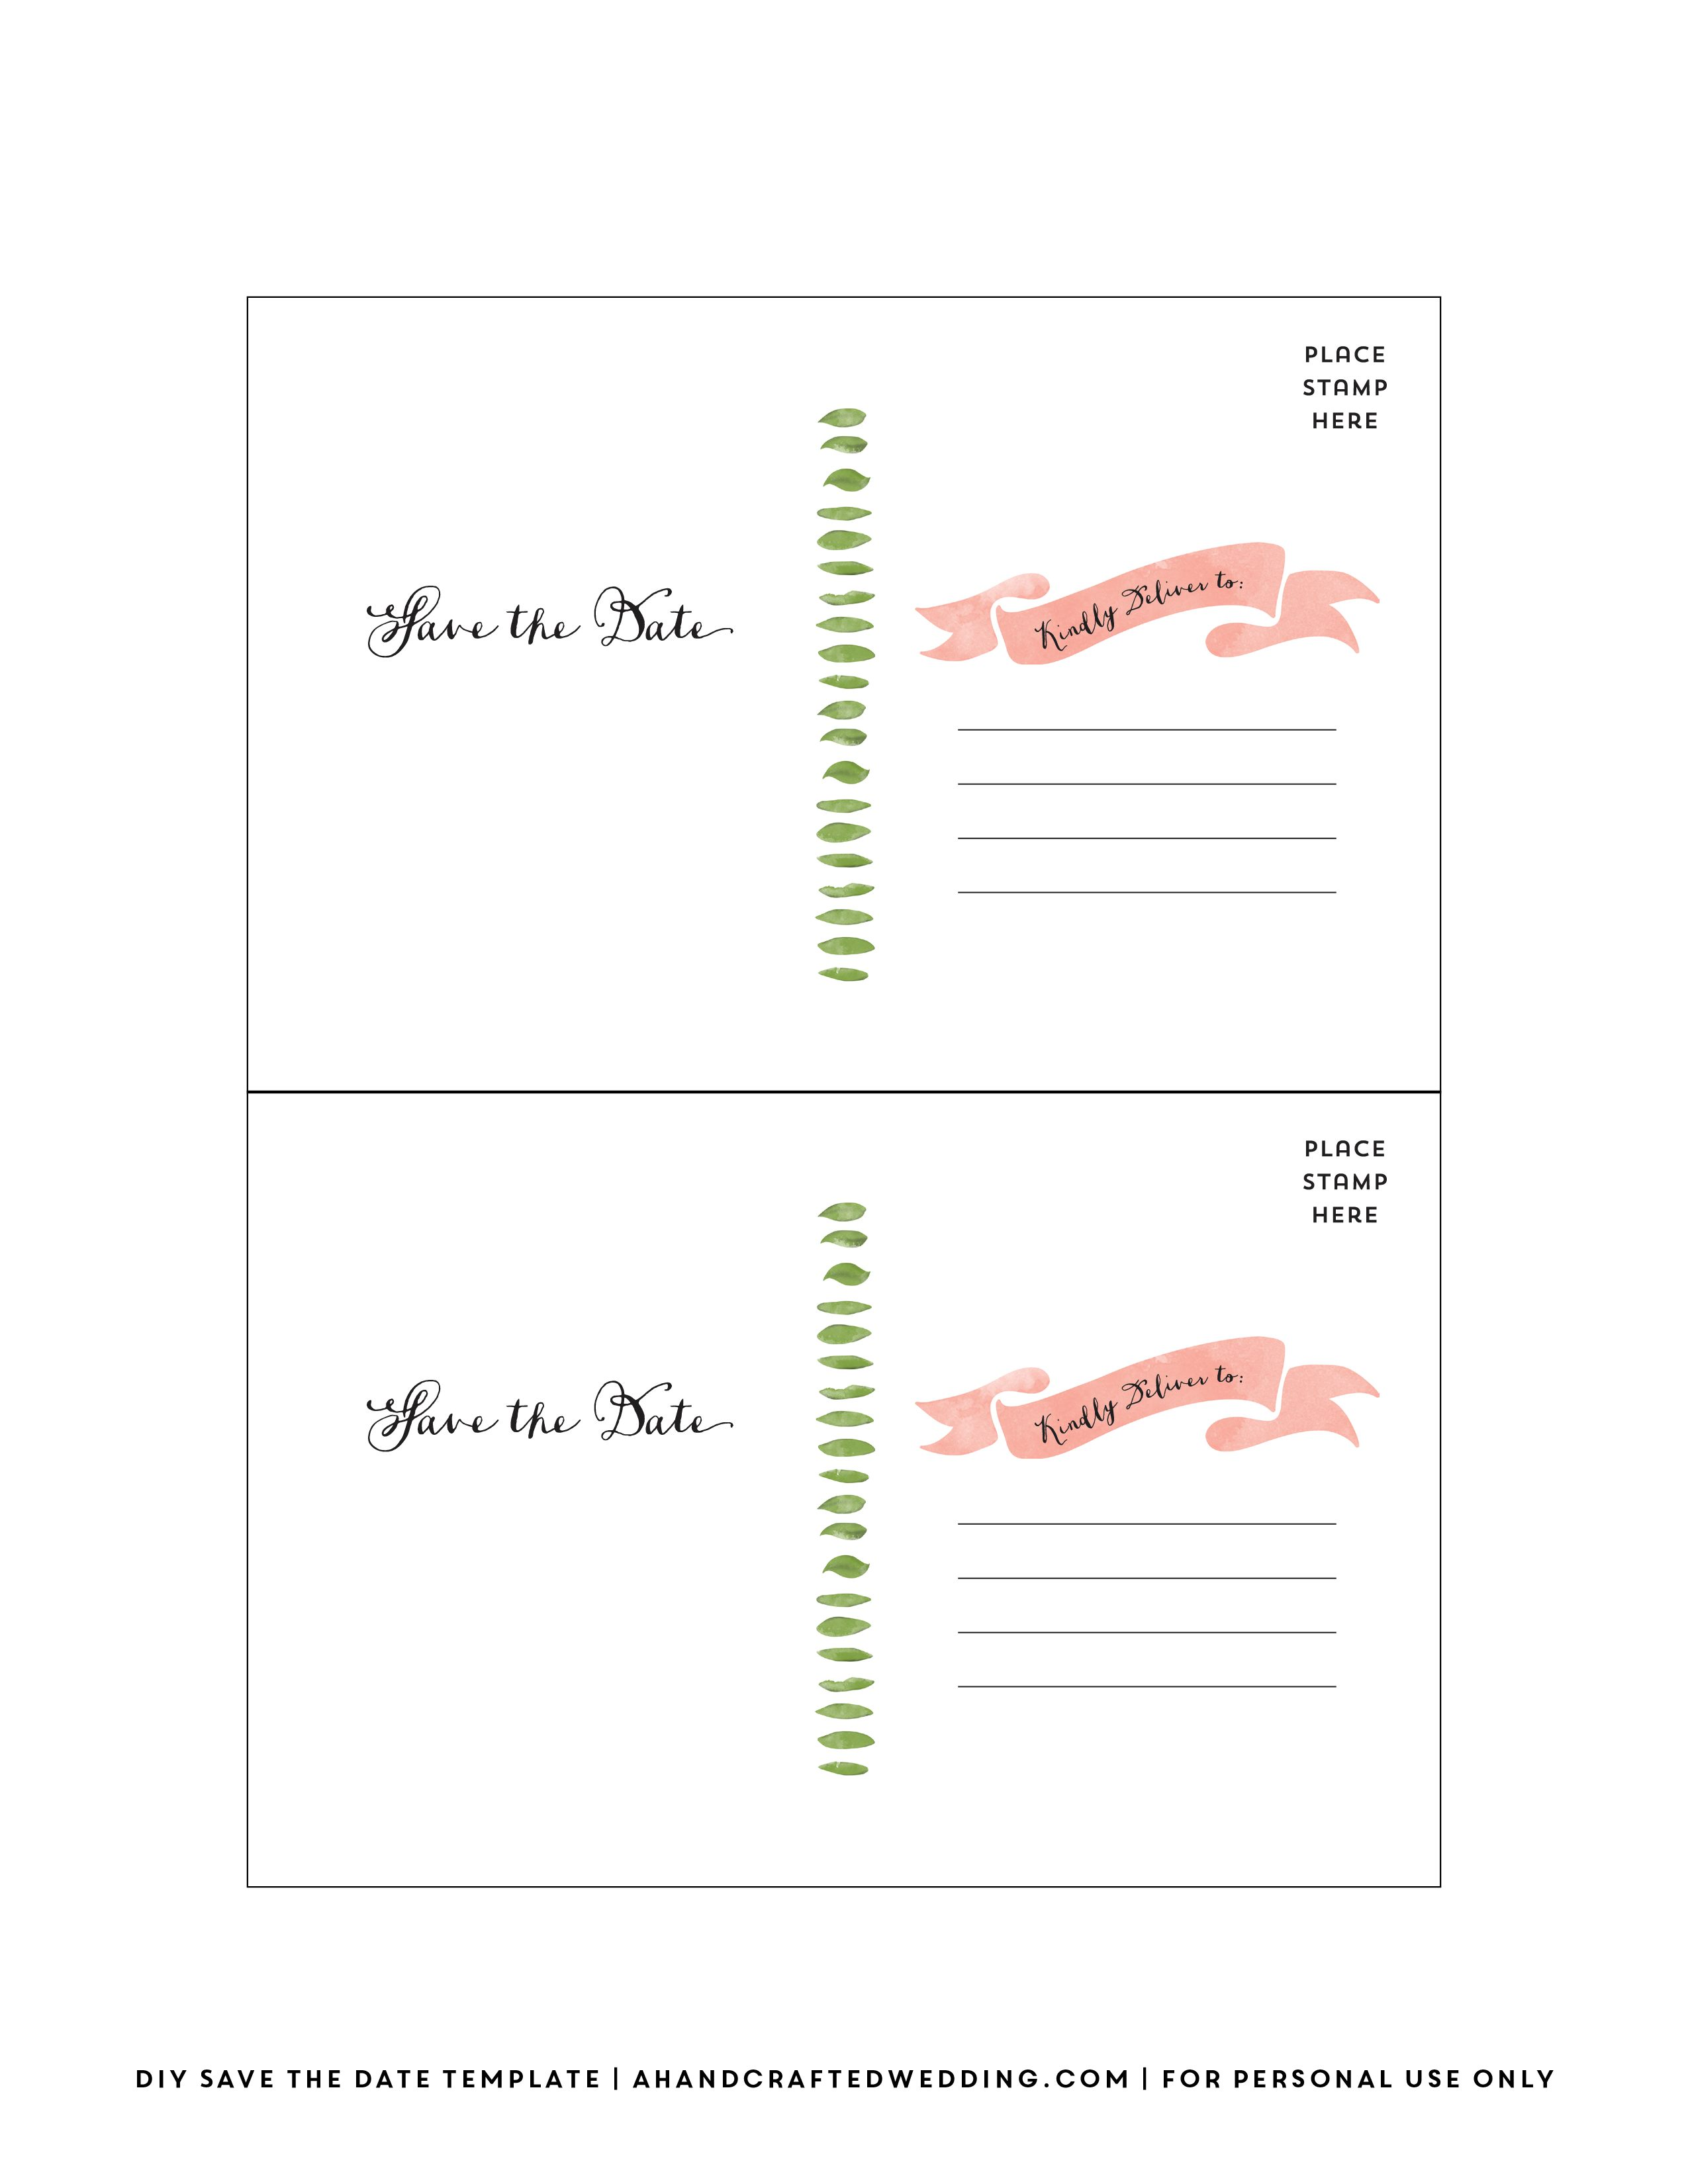 DIY Save The Date Postcard Free Printable | Mountain Modern Life